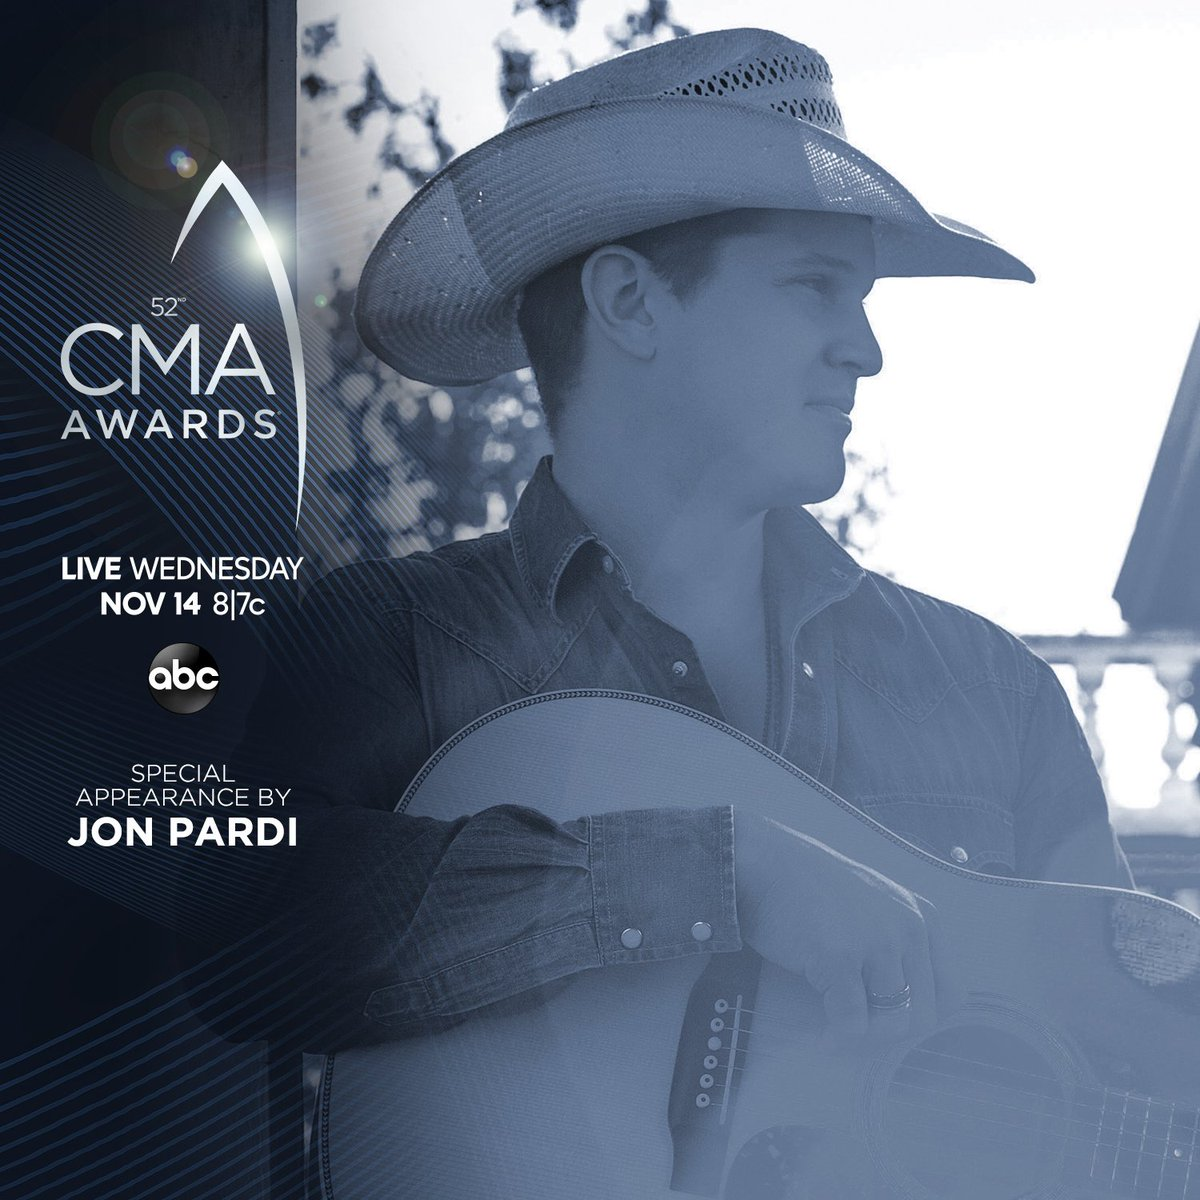 Cant have an awards show without a little Pardi! See a special appearance by @JonPardi during the #CMAawards this Wednesday at 8|7c on @ABCNetwork. CMAawards.com